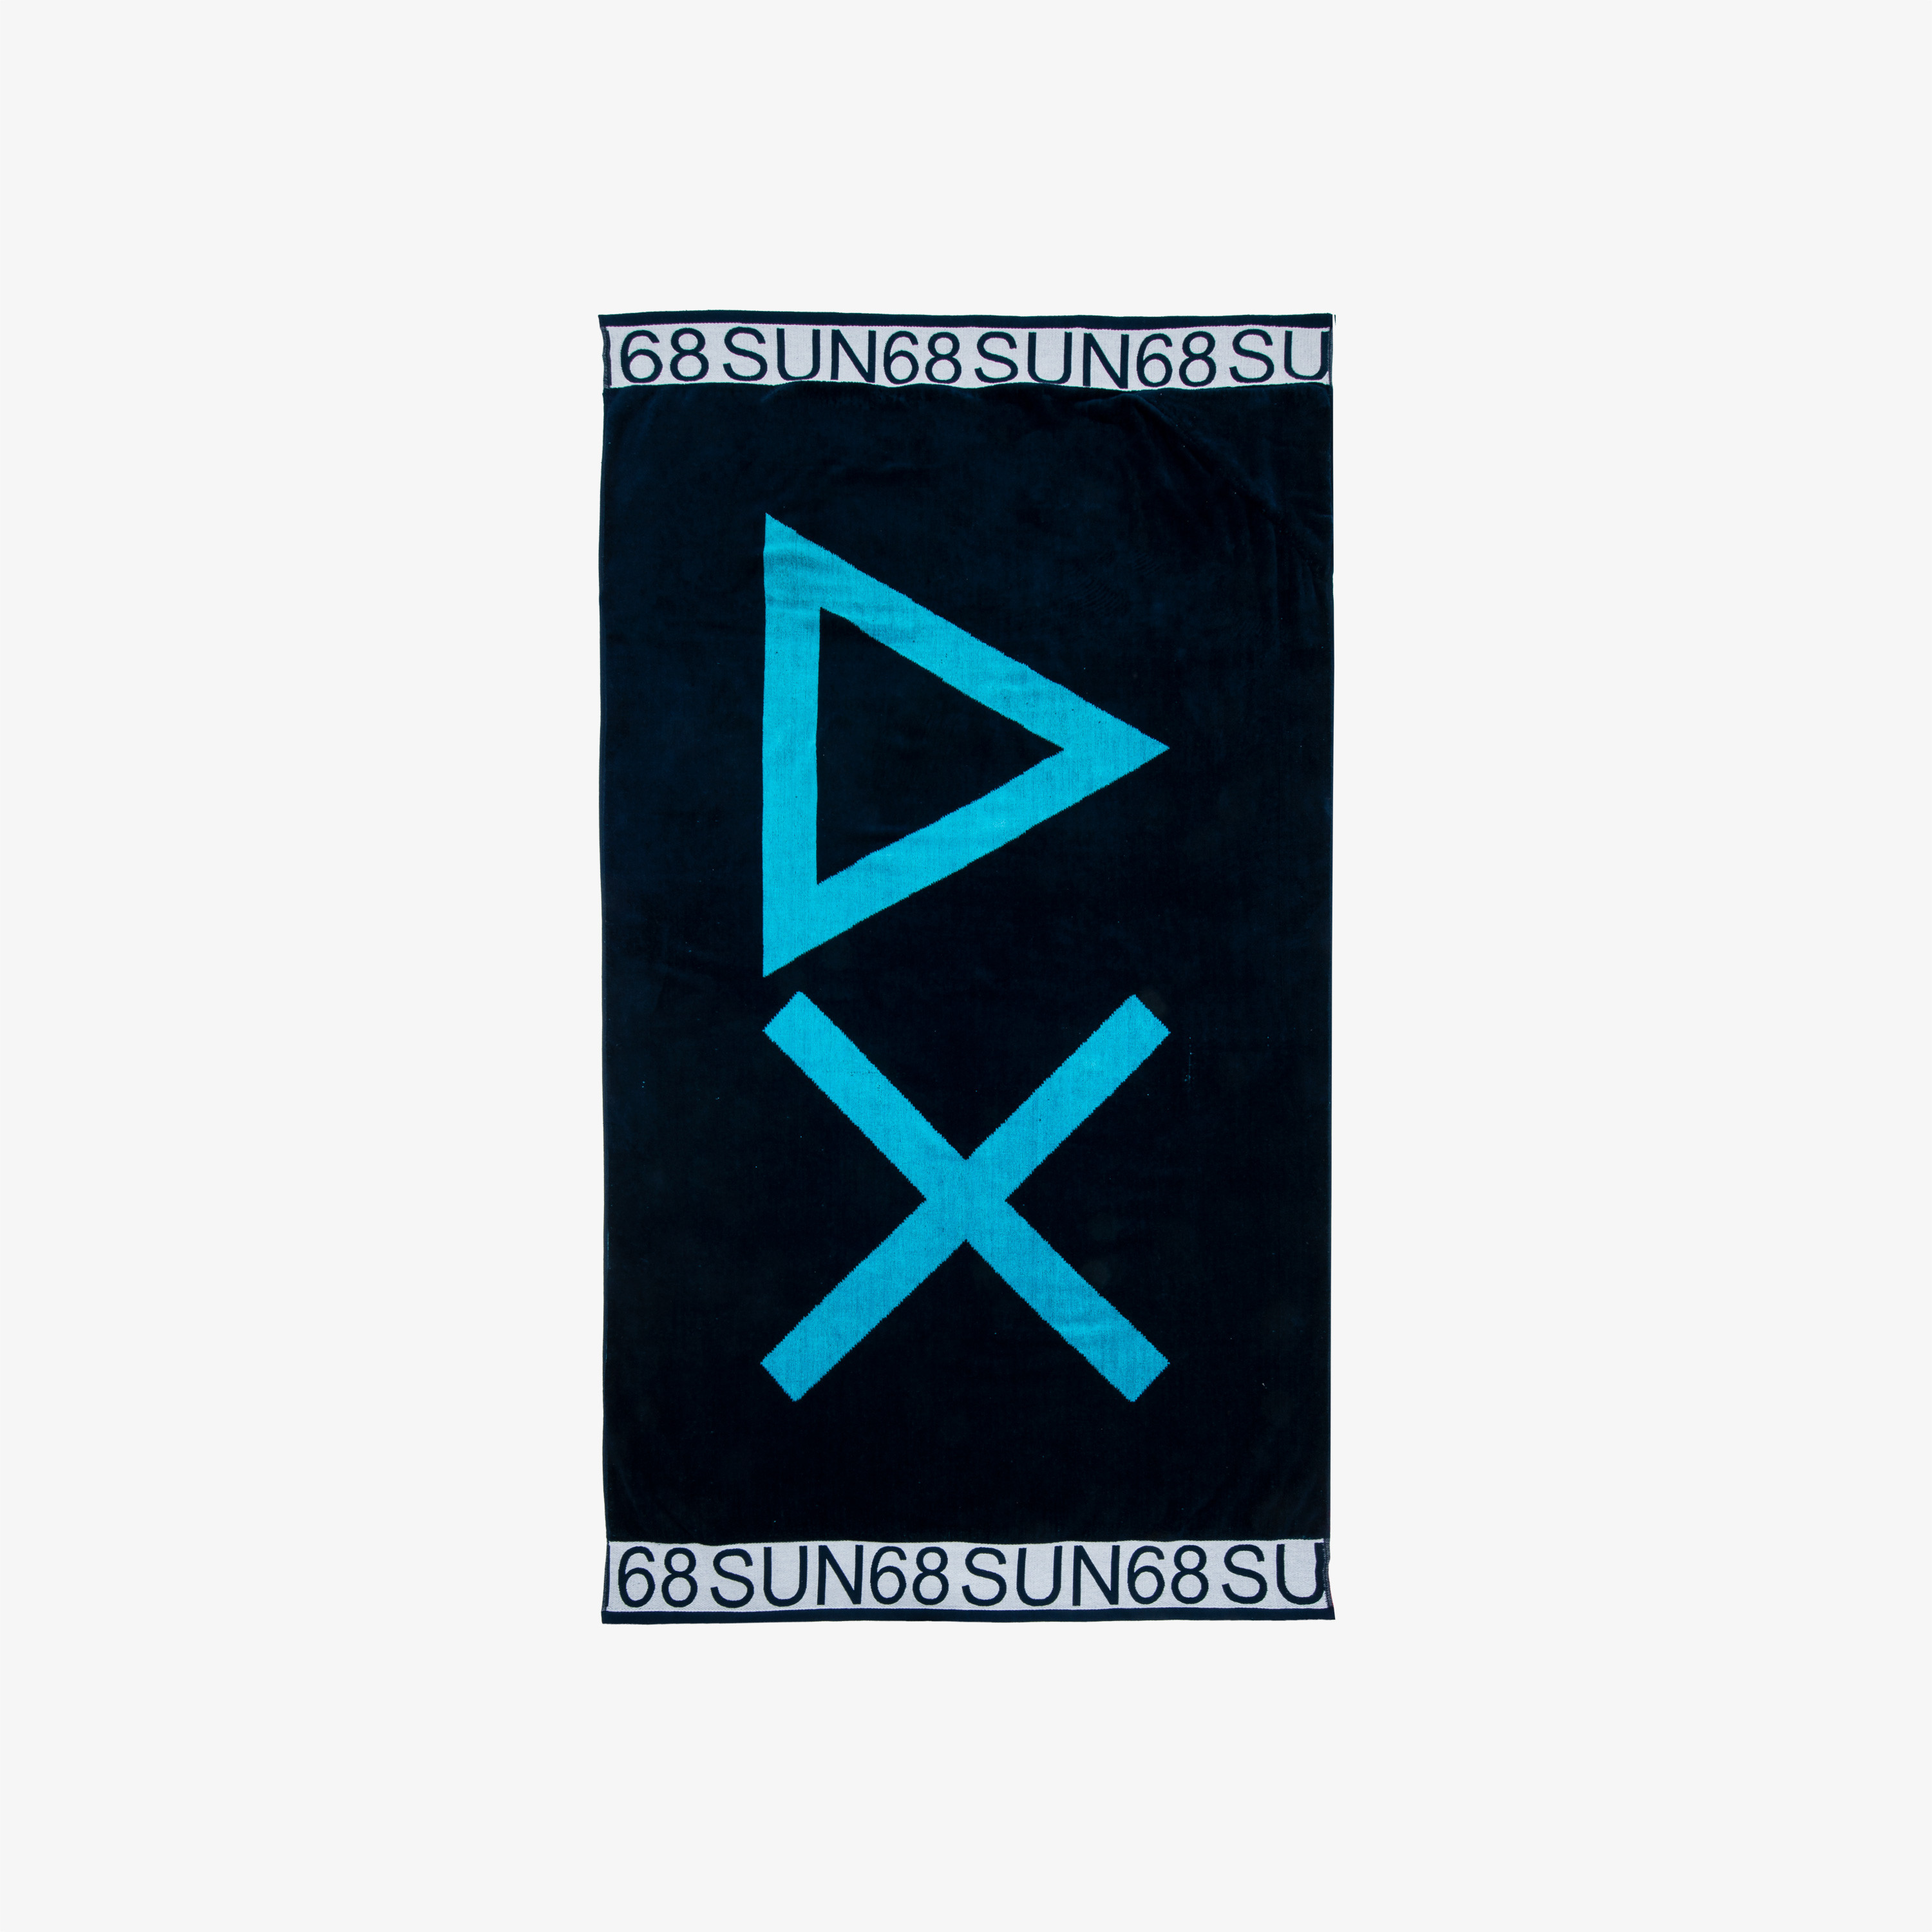 BEACH TOWEL LOGO NAVY BLUE/TURQUOISE